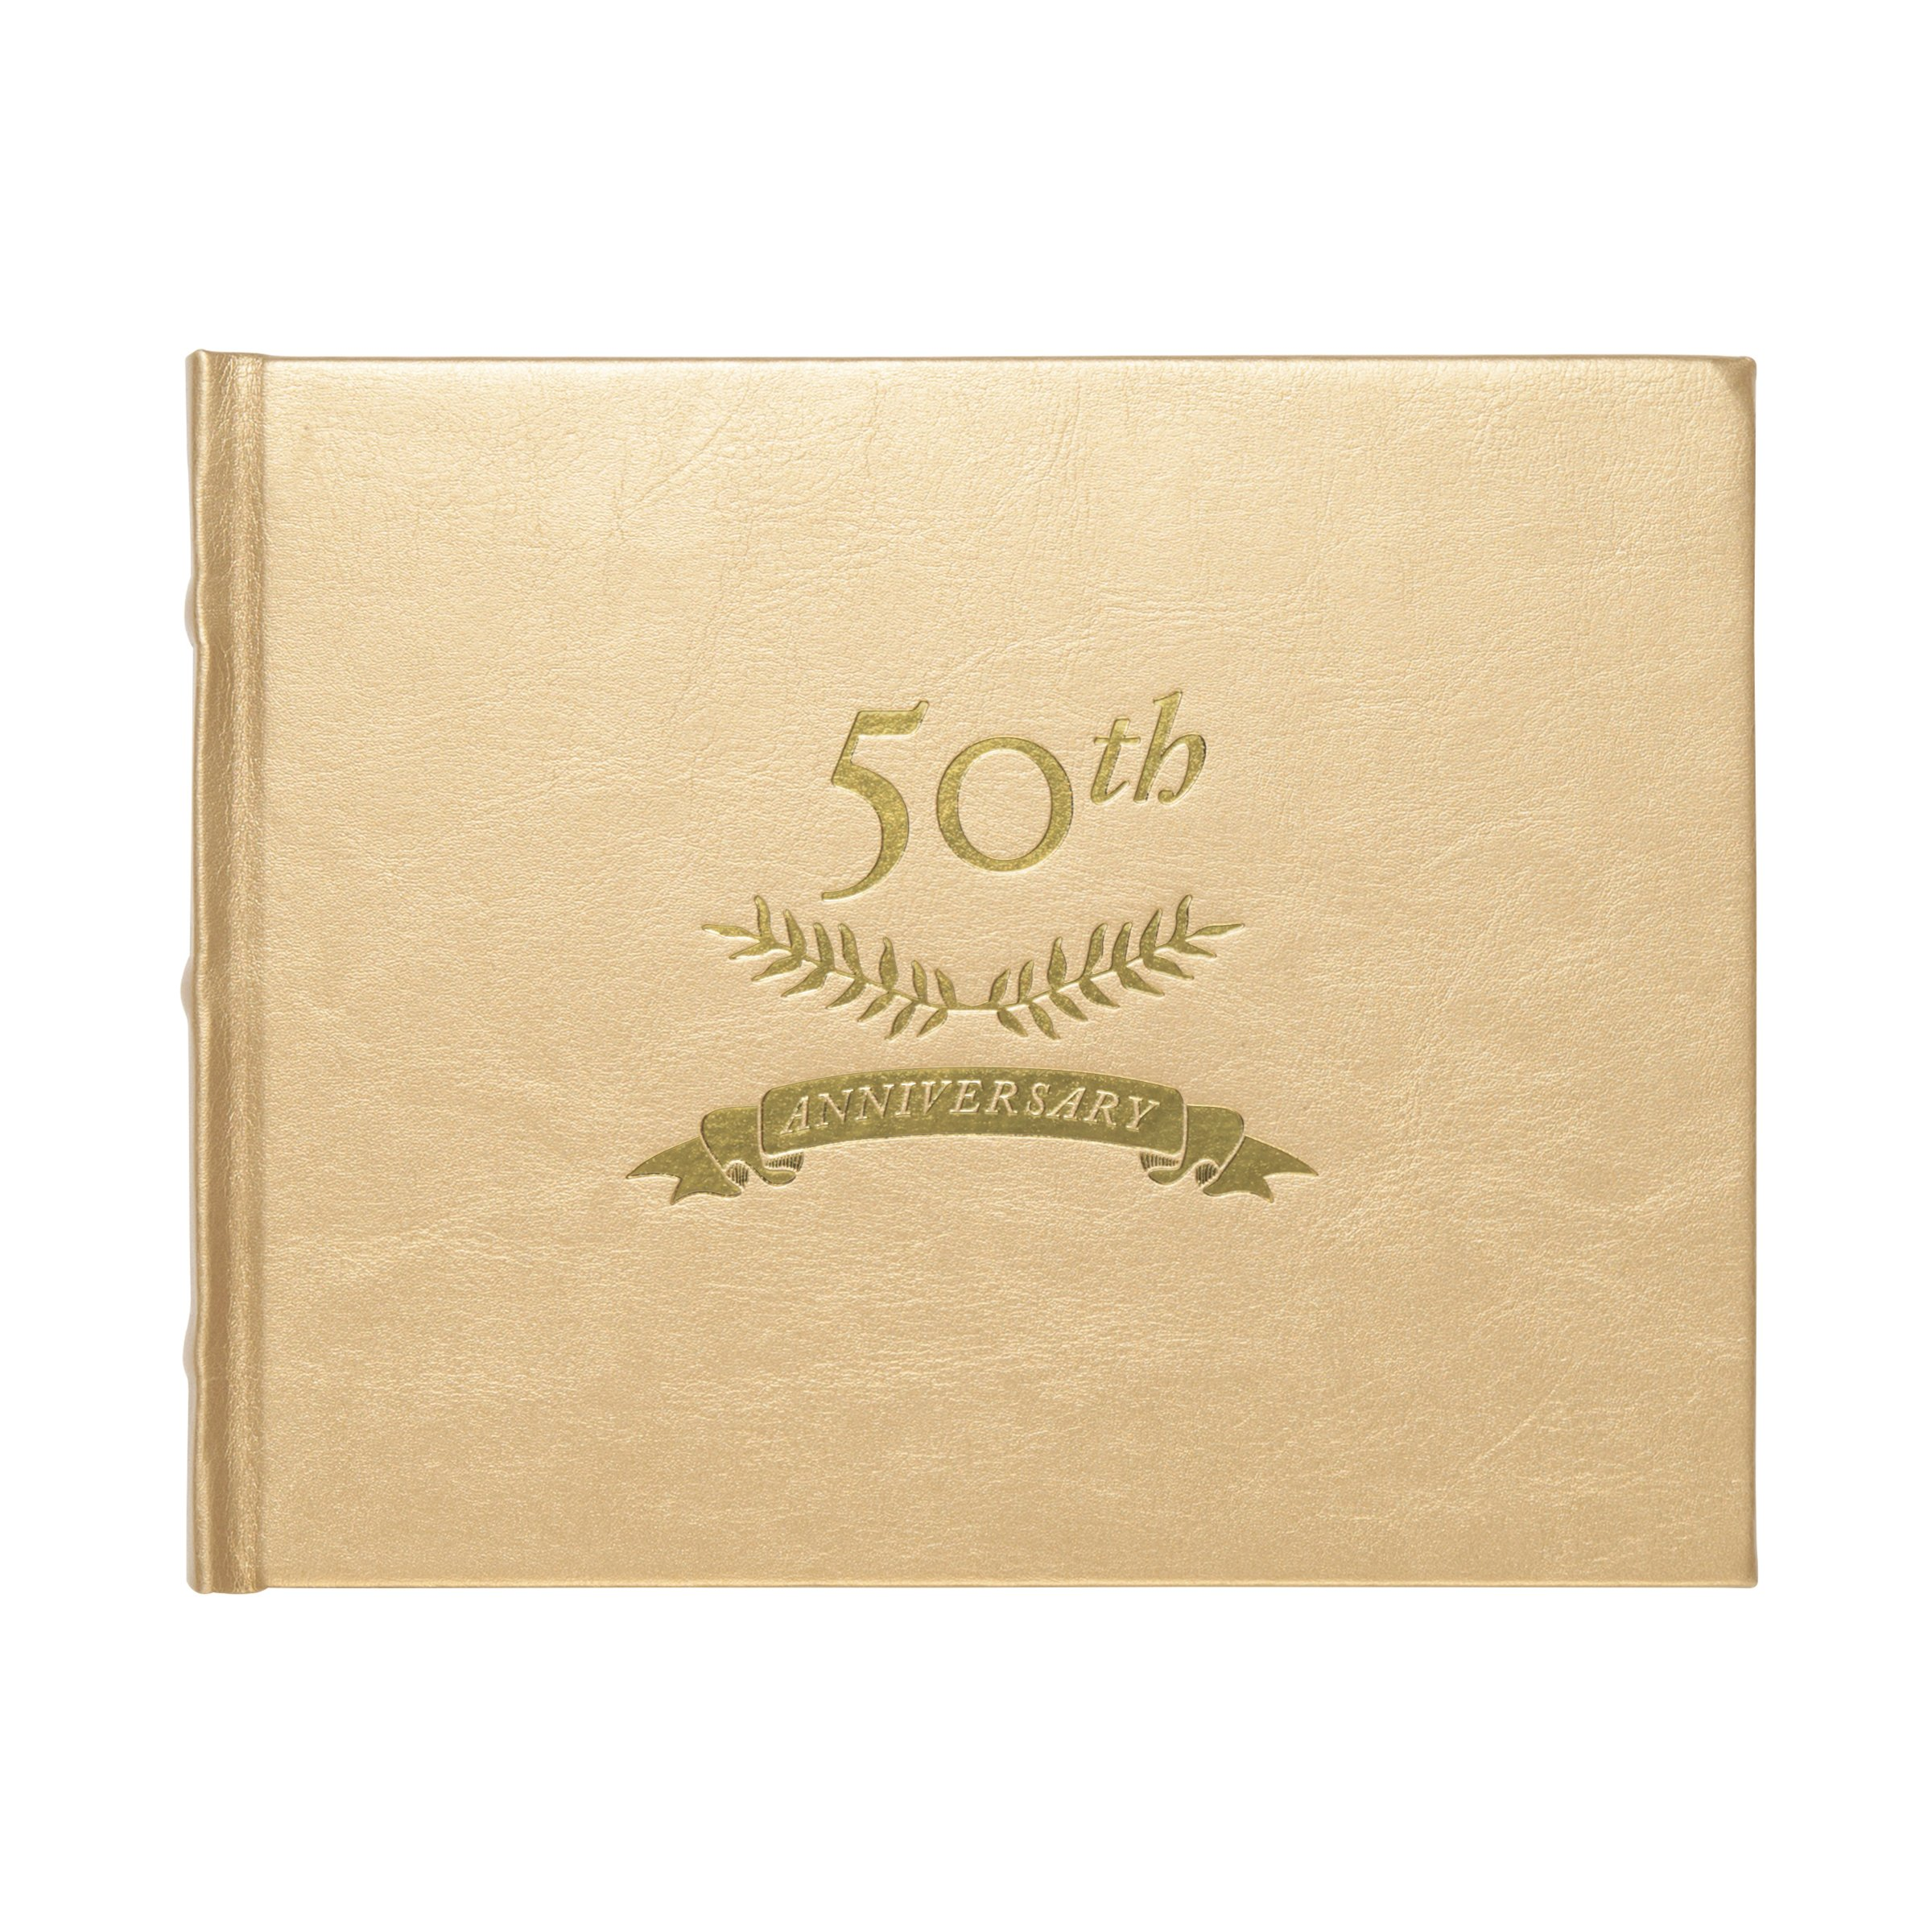 C.R. Gibson WG7-18798 - 50TH Anniversary Golden Guest Book by C.R. Gibson